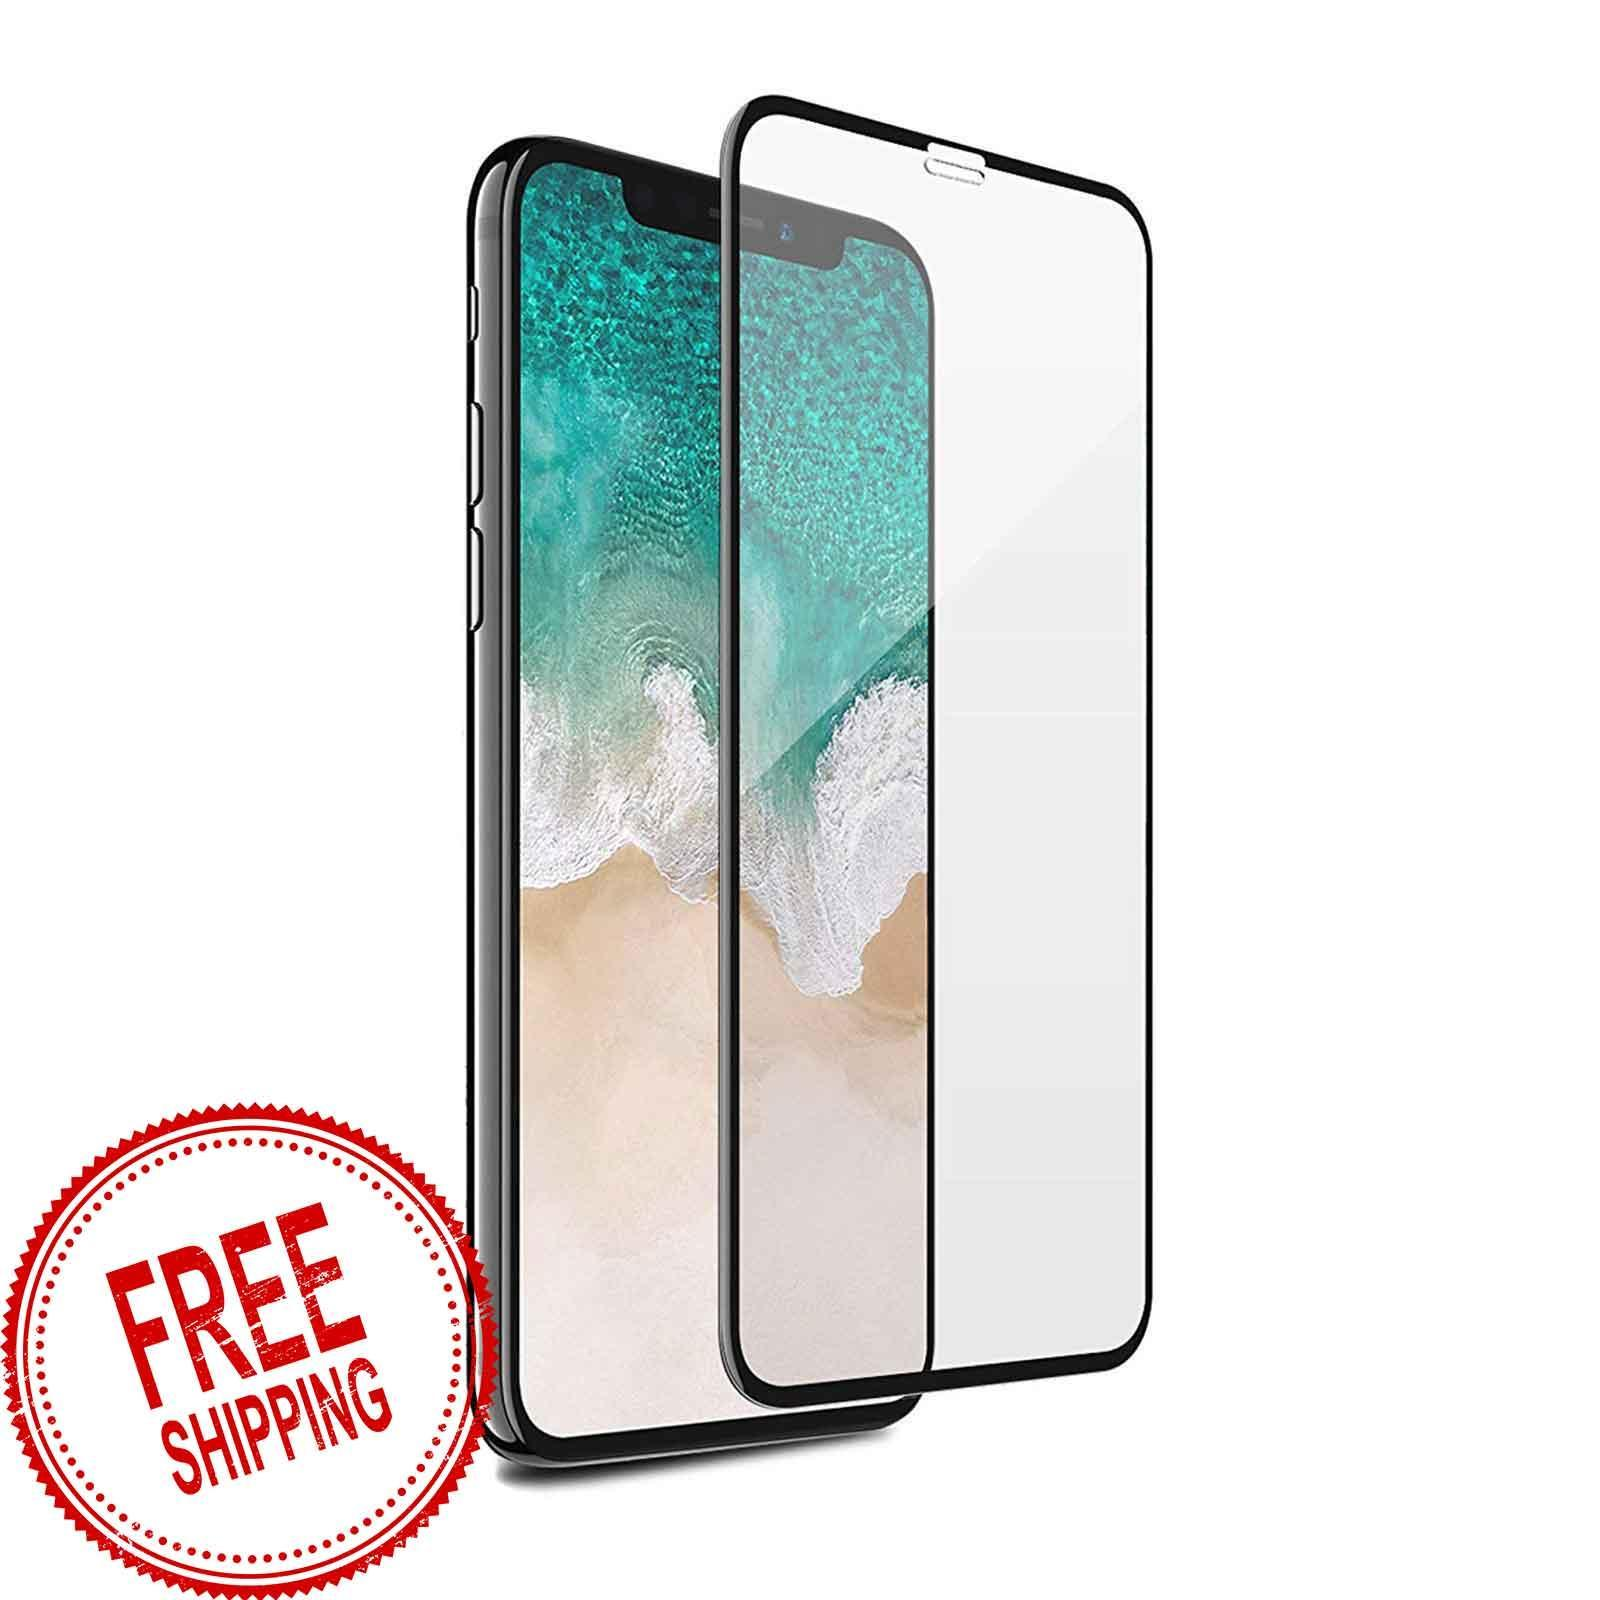 2.5D Tempered Glass for iPhone X / iPhone XS / iPhone XR / iPhone XS